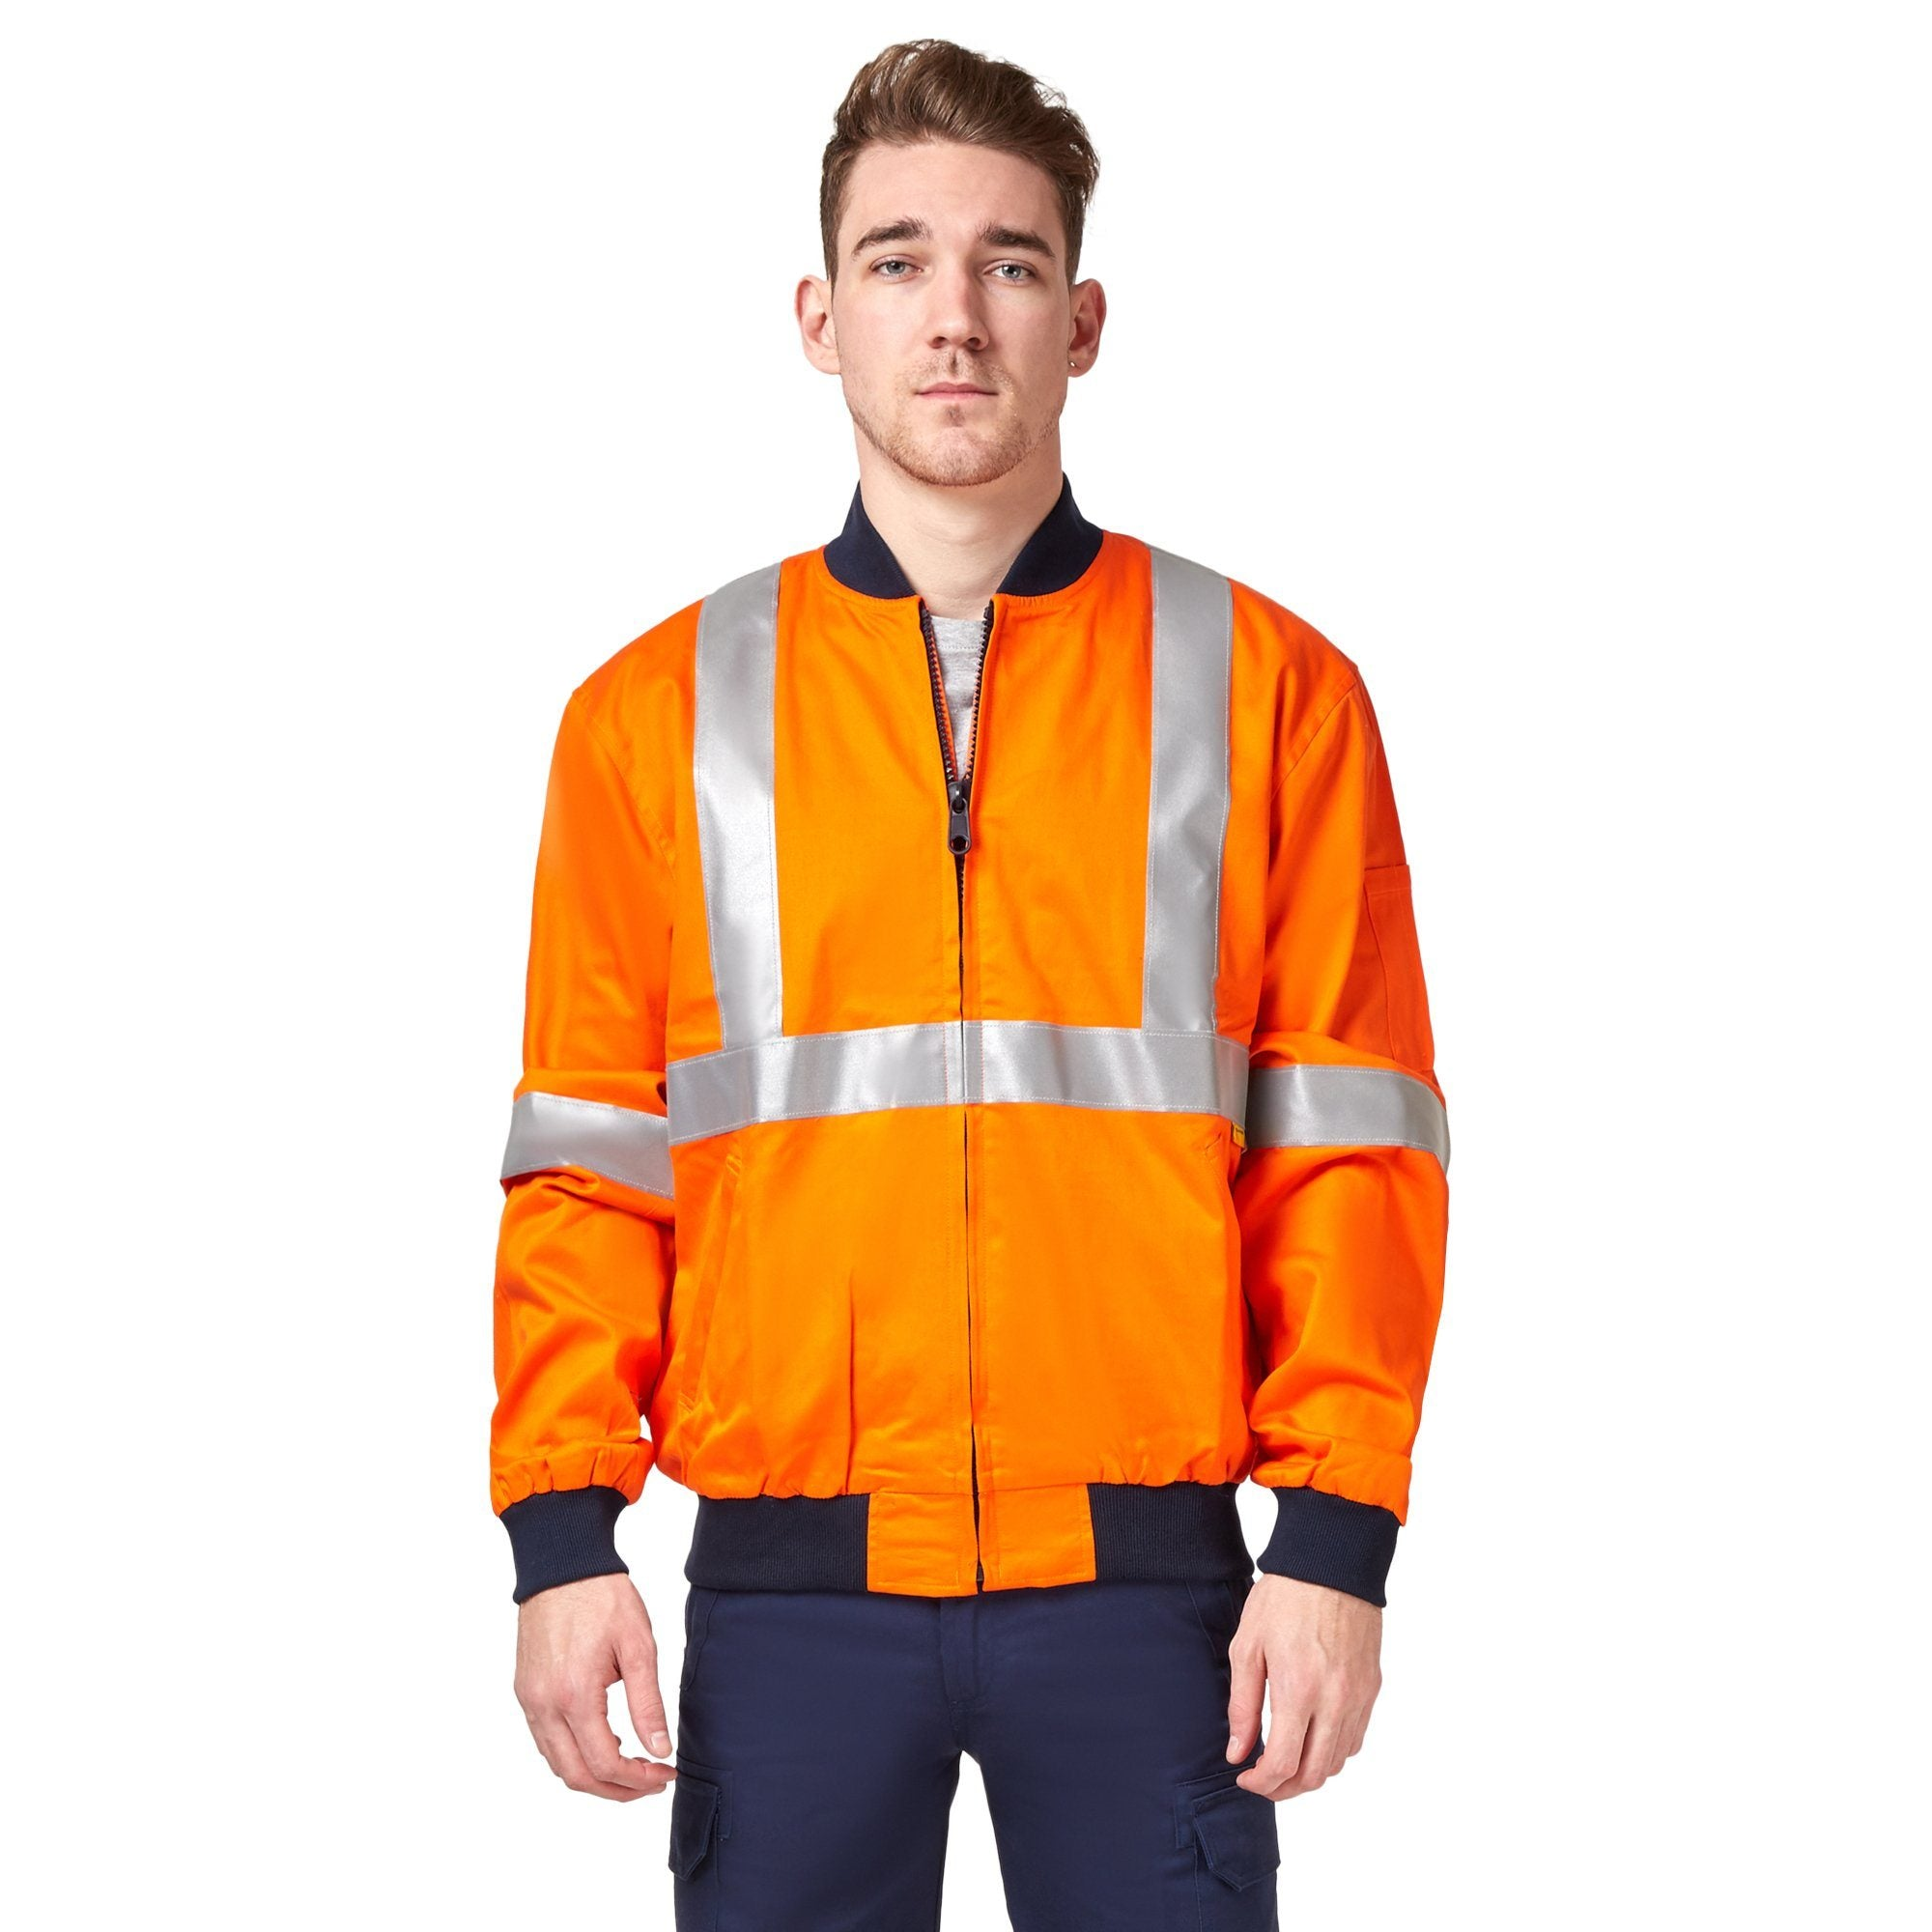 King Gee Jacket - Orange/Navy Workwear Isbister & Co Wholesale